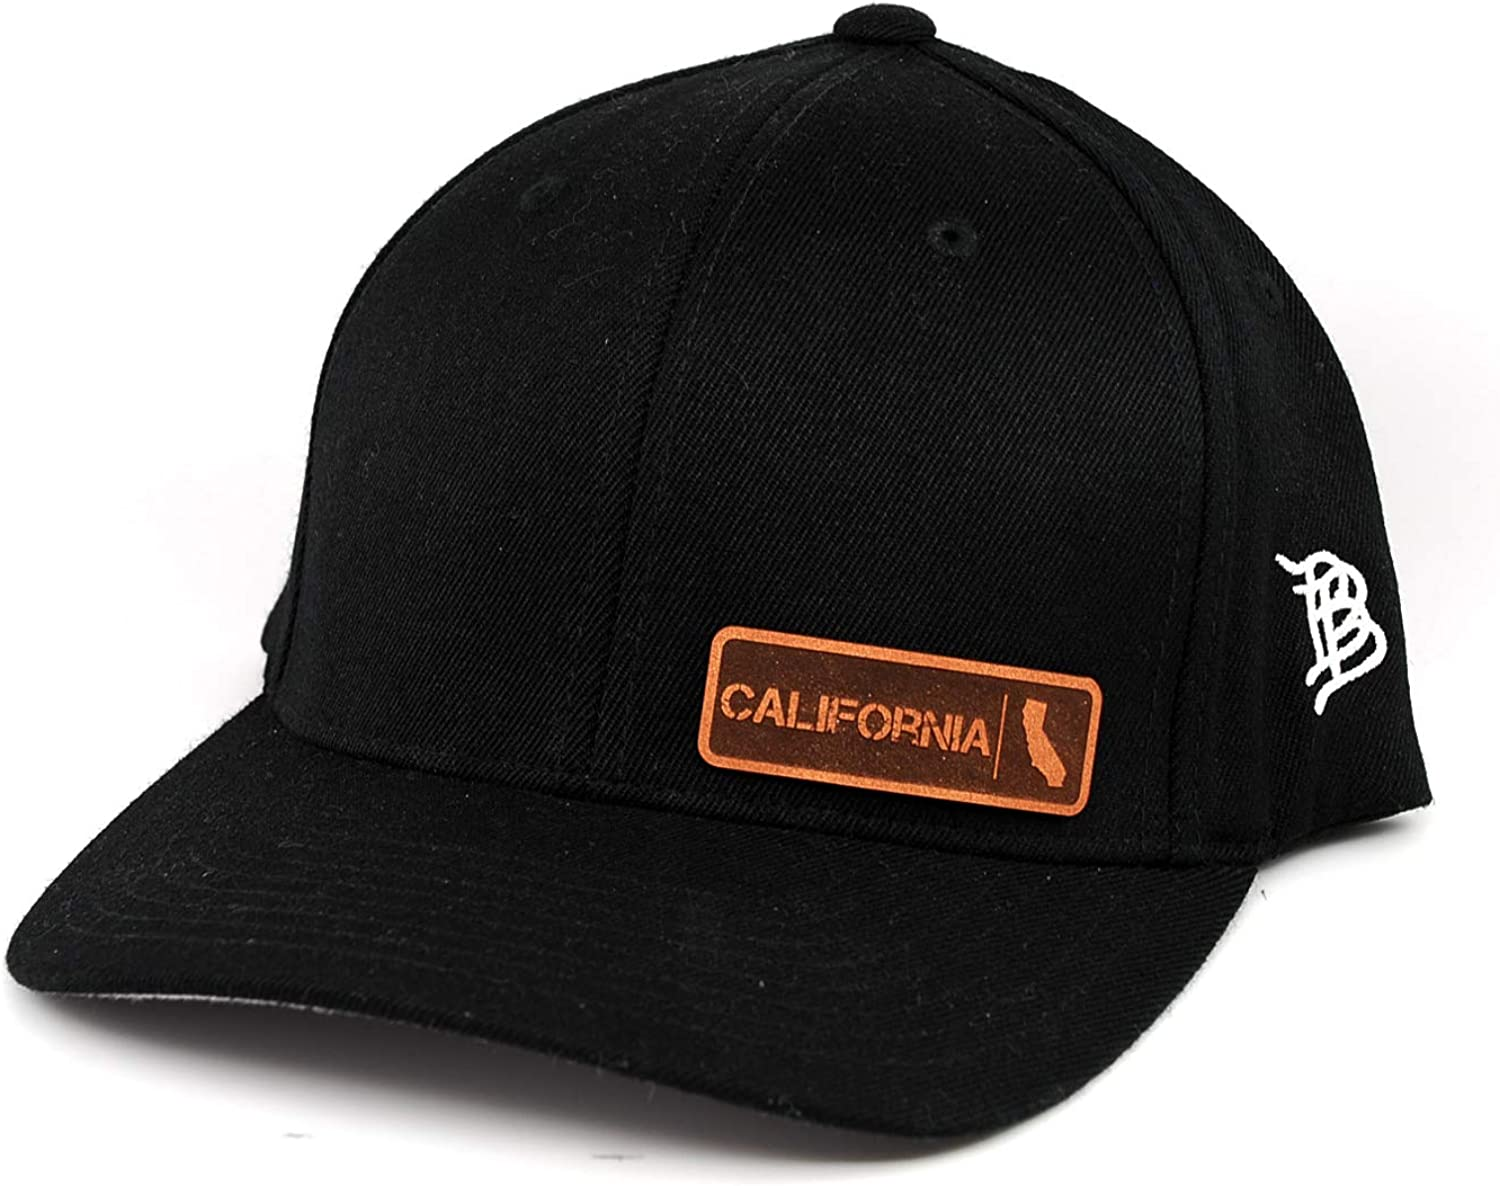 Branded Bills 'California Native' Easy-to-use Leather Patch Flex L Hat Minneapolis Mall - Fit